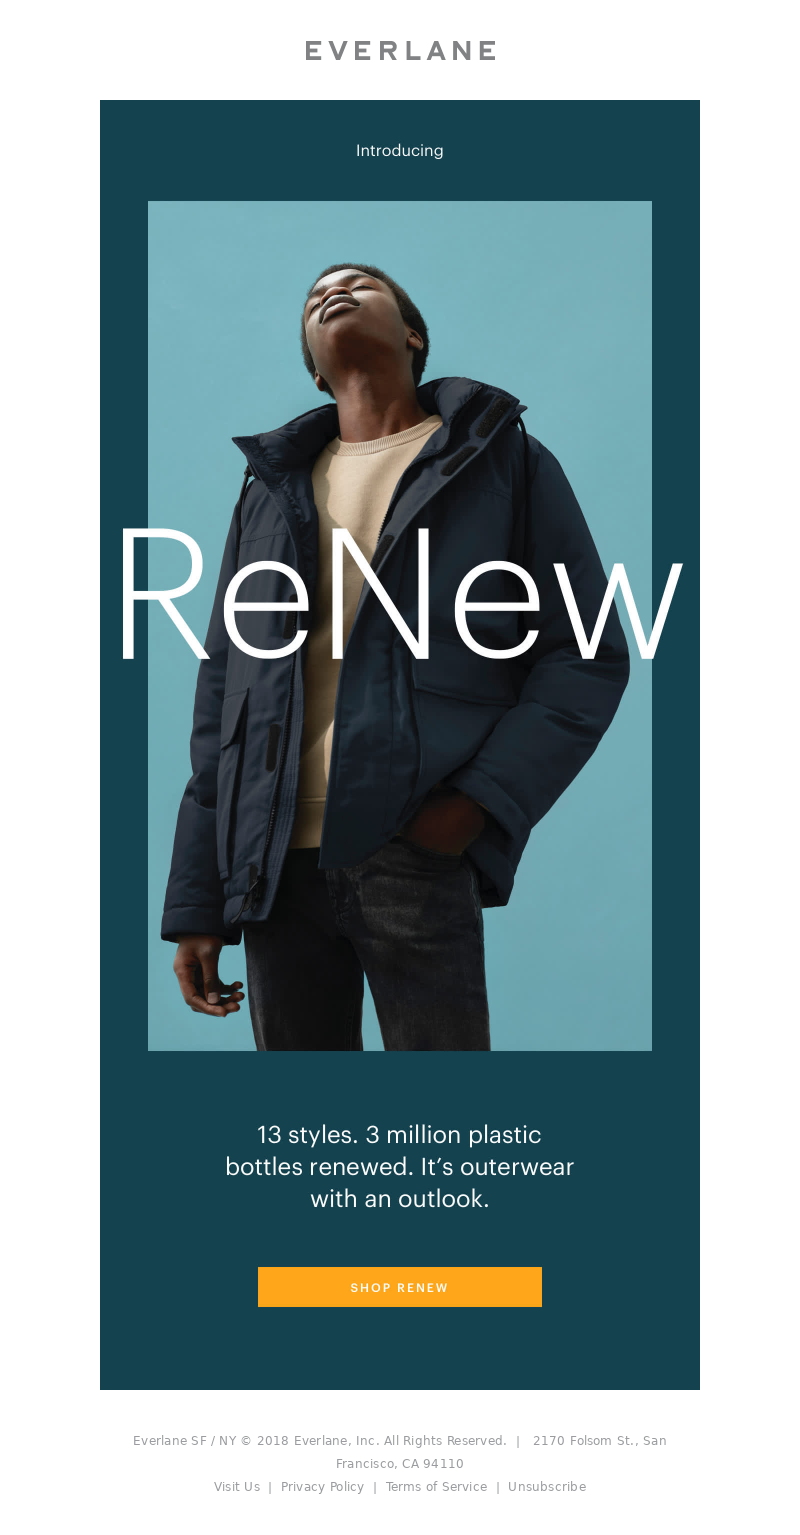 Everlane 2018 10 24 1201 wednesday The Wait Is Over ReNew 2